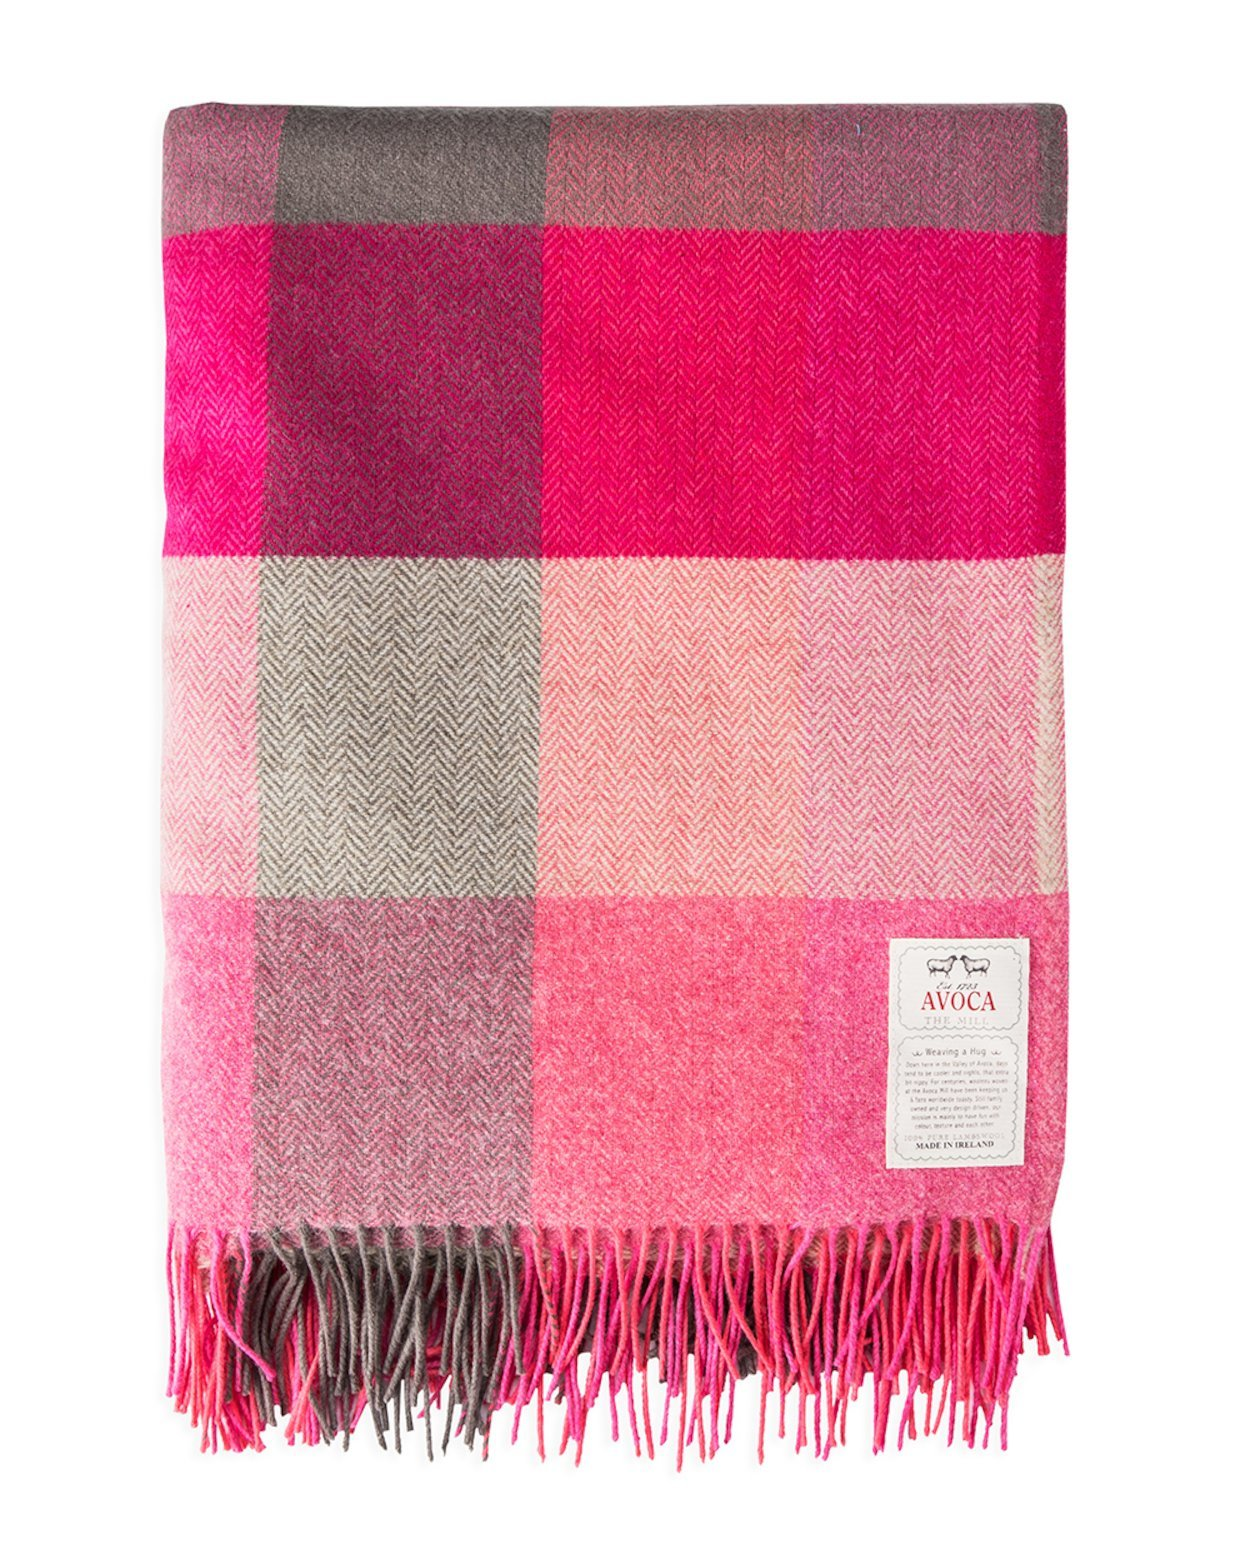 Plaid Lambswool Pink Fields